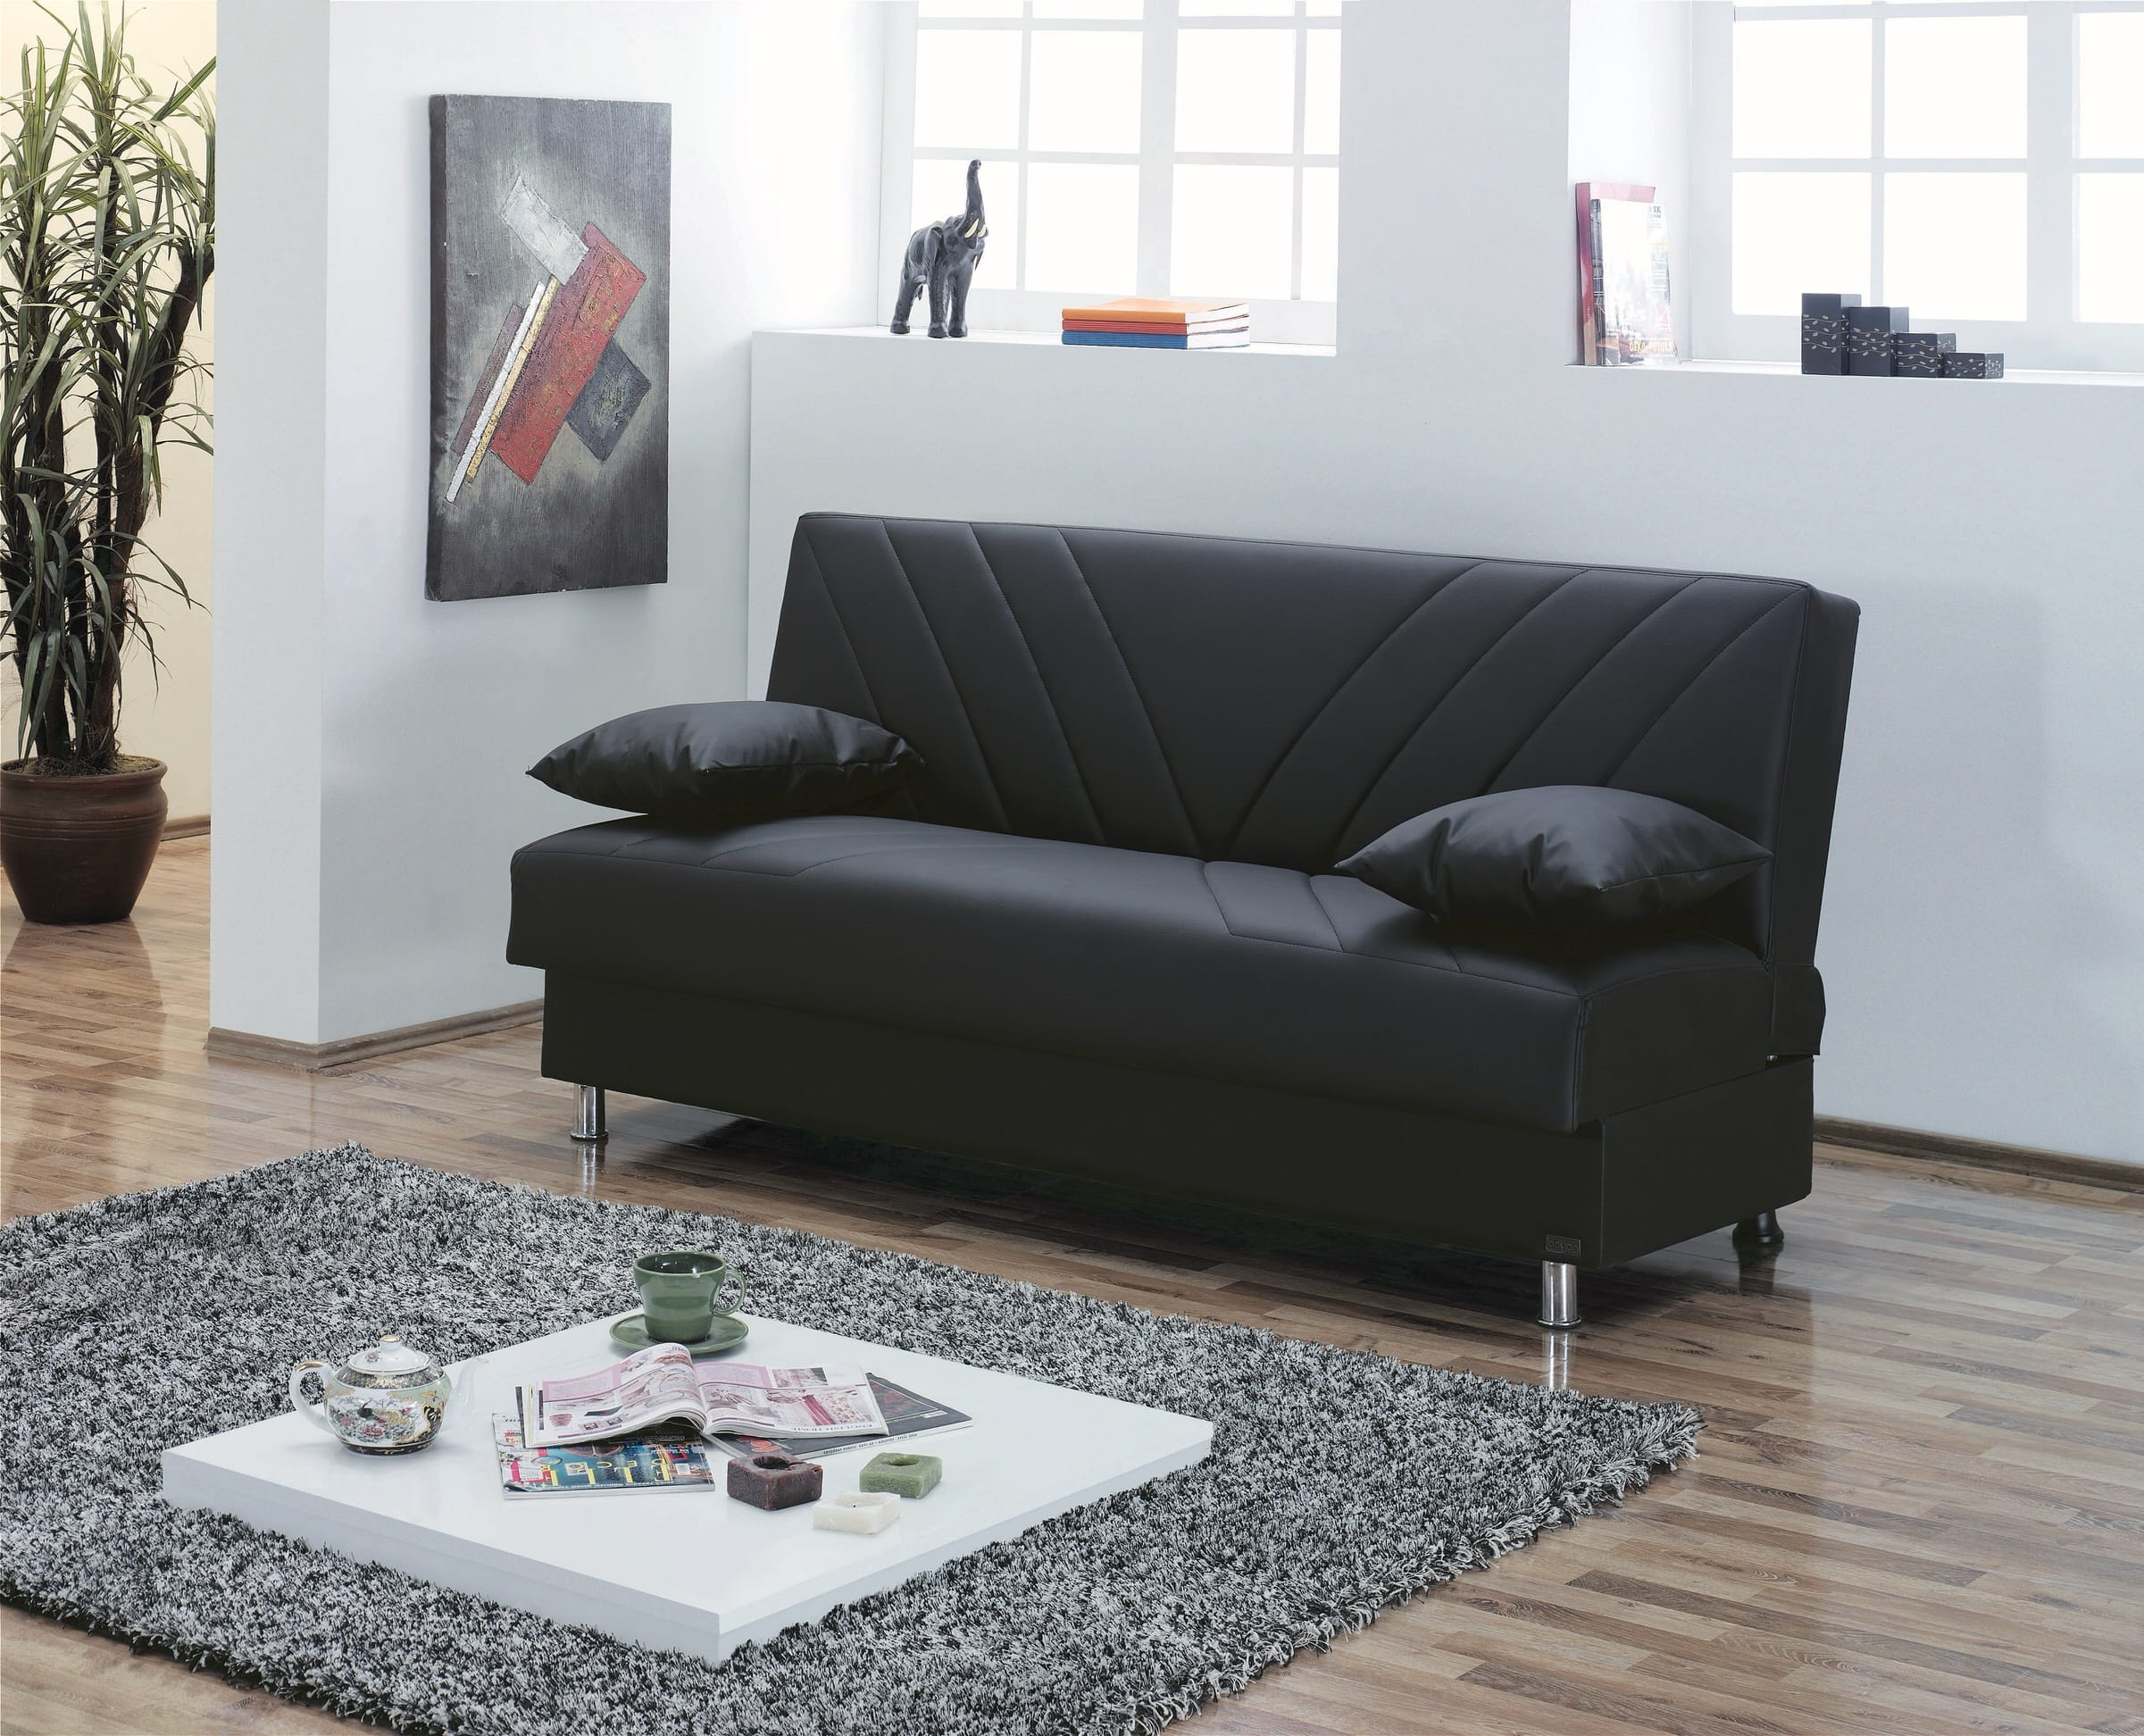 Halifax Black Leather Sofa Bed By Empire Furniture USA (Empire Furniture  USA)